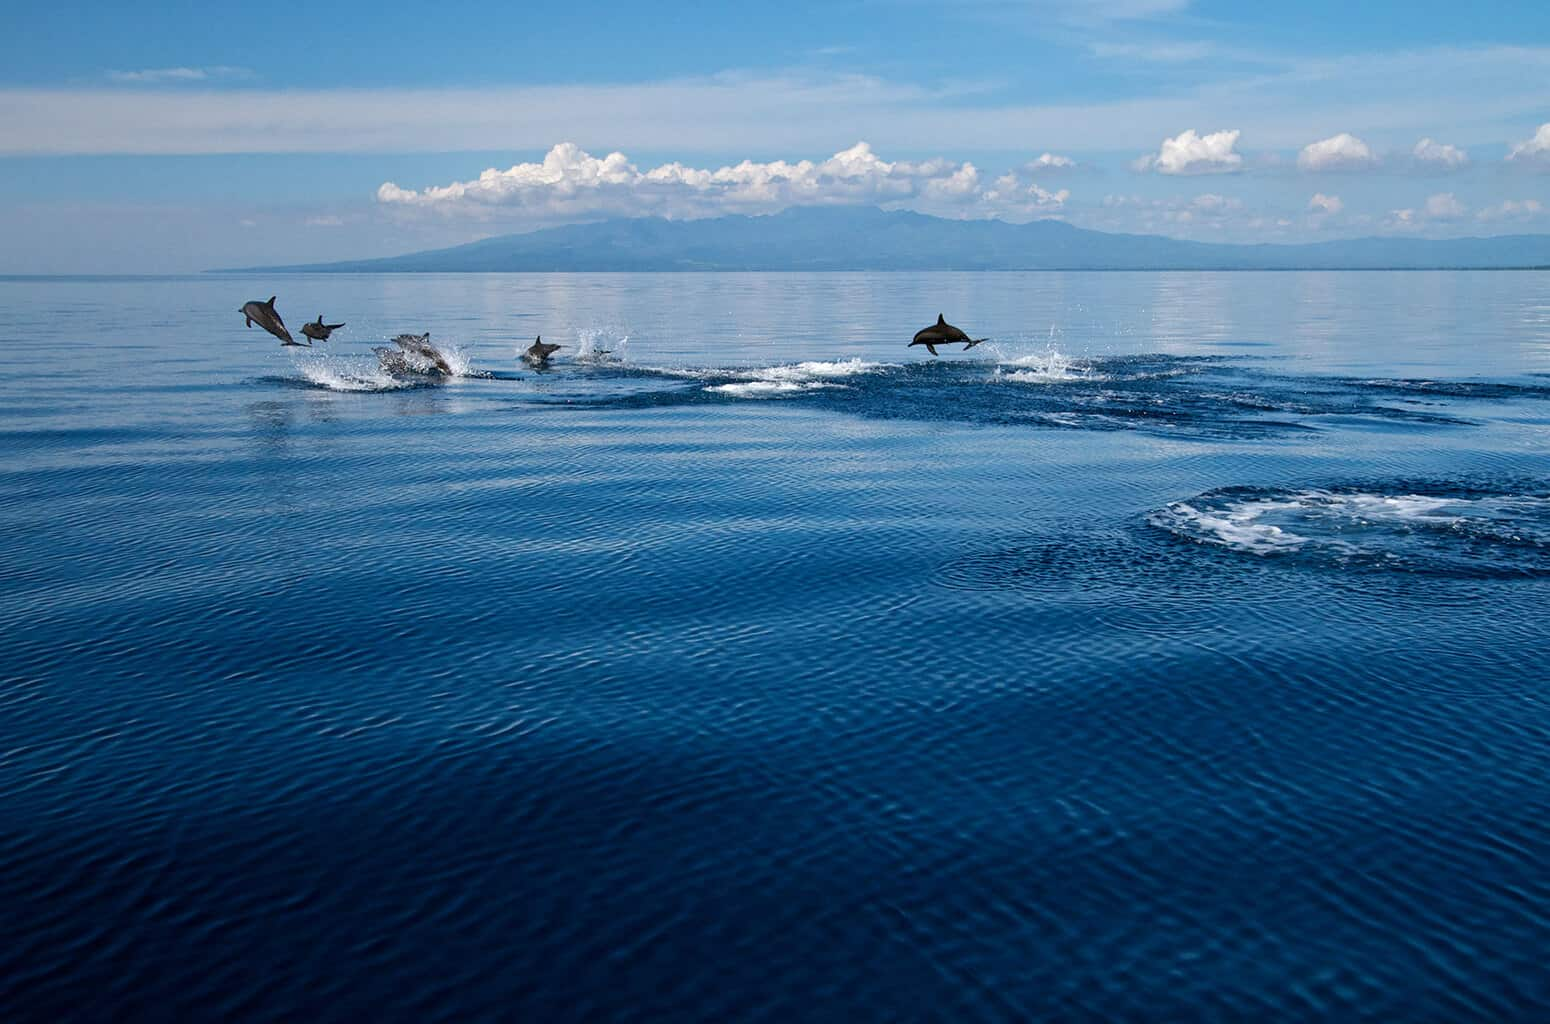 Philippines Diving holidays Atmosphere Resort Dolphins in the air